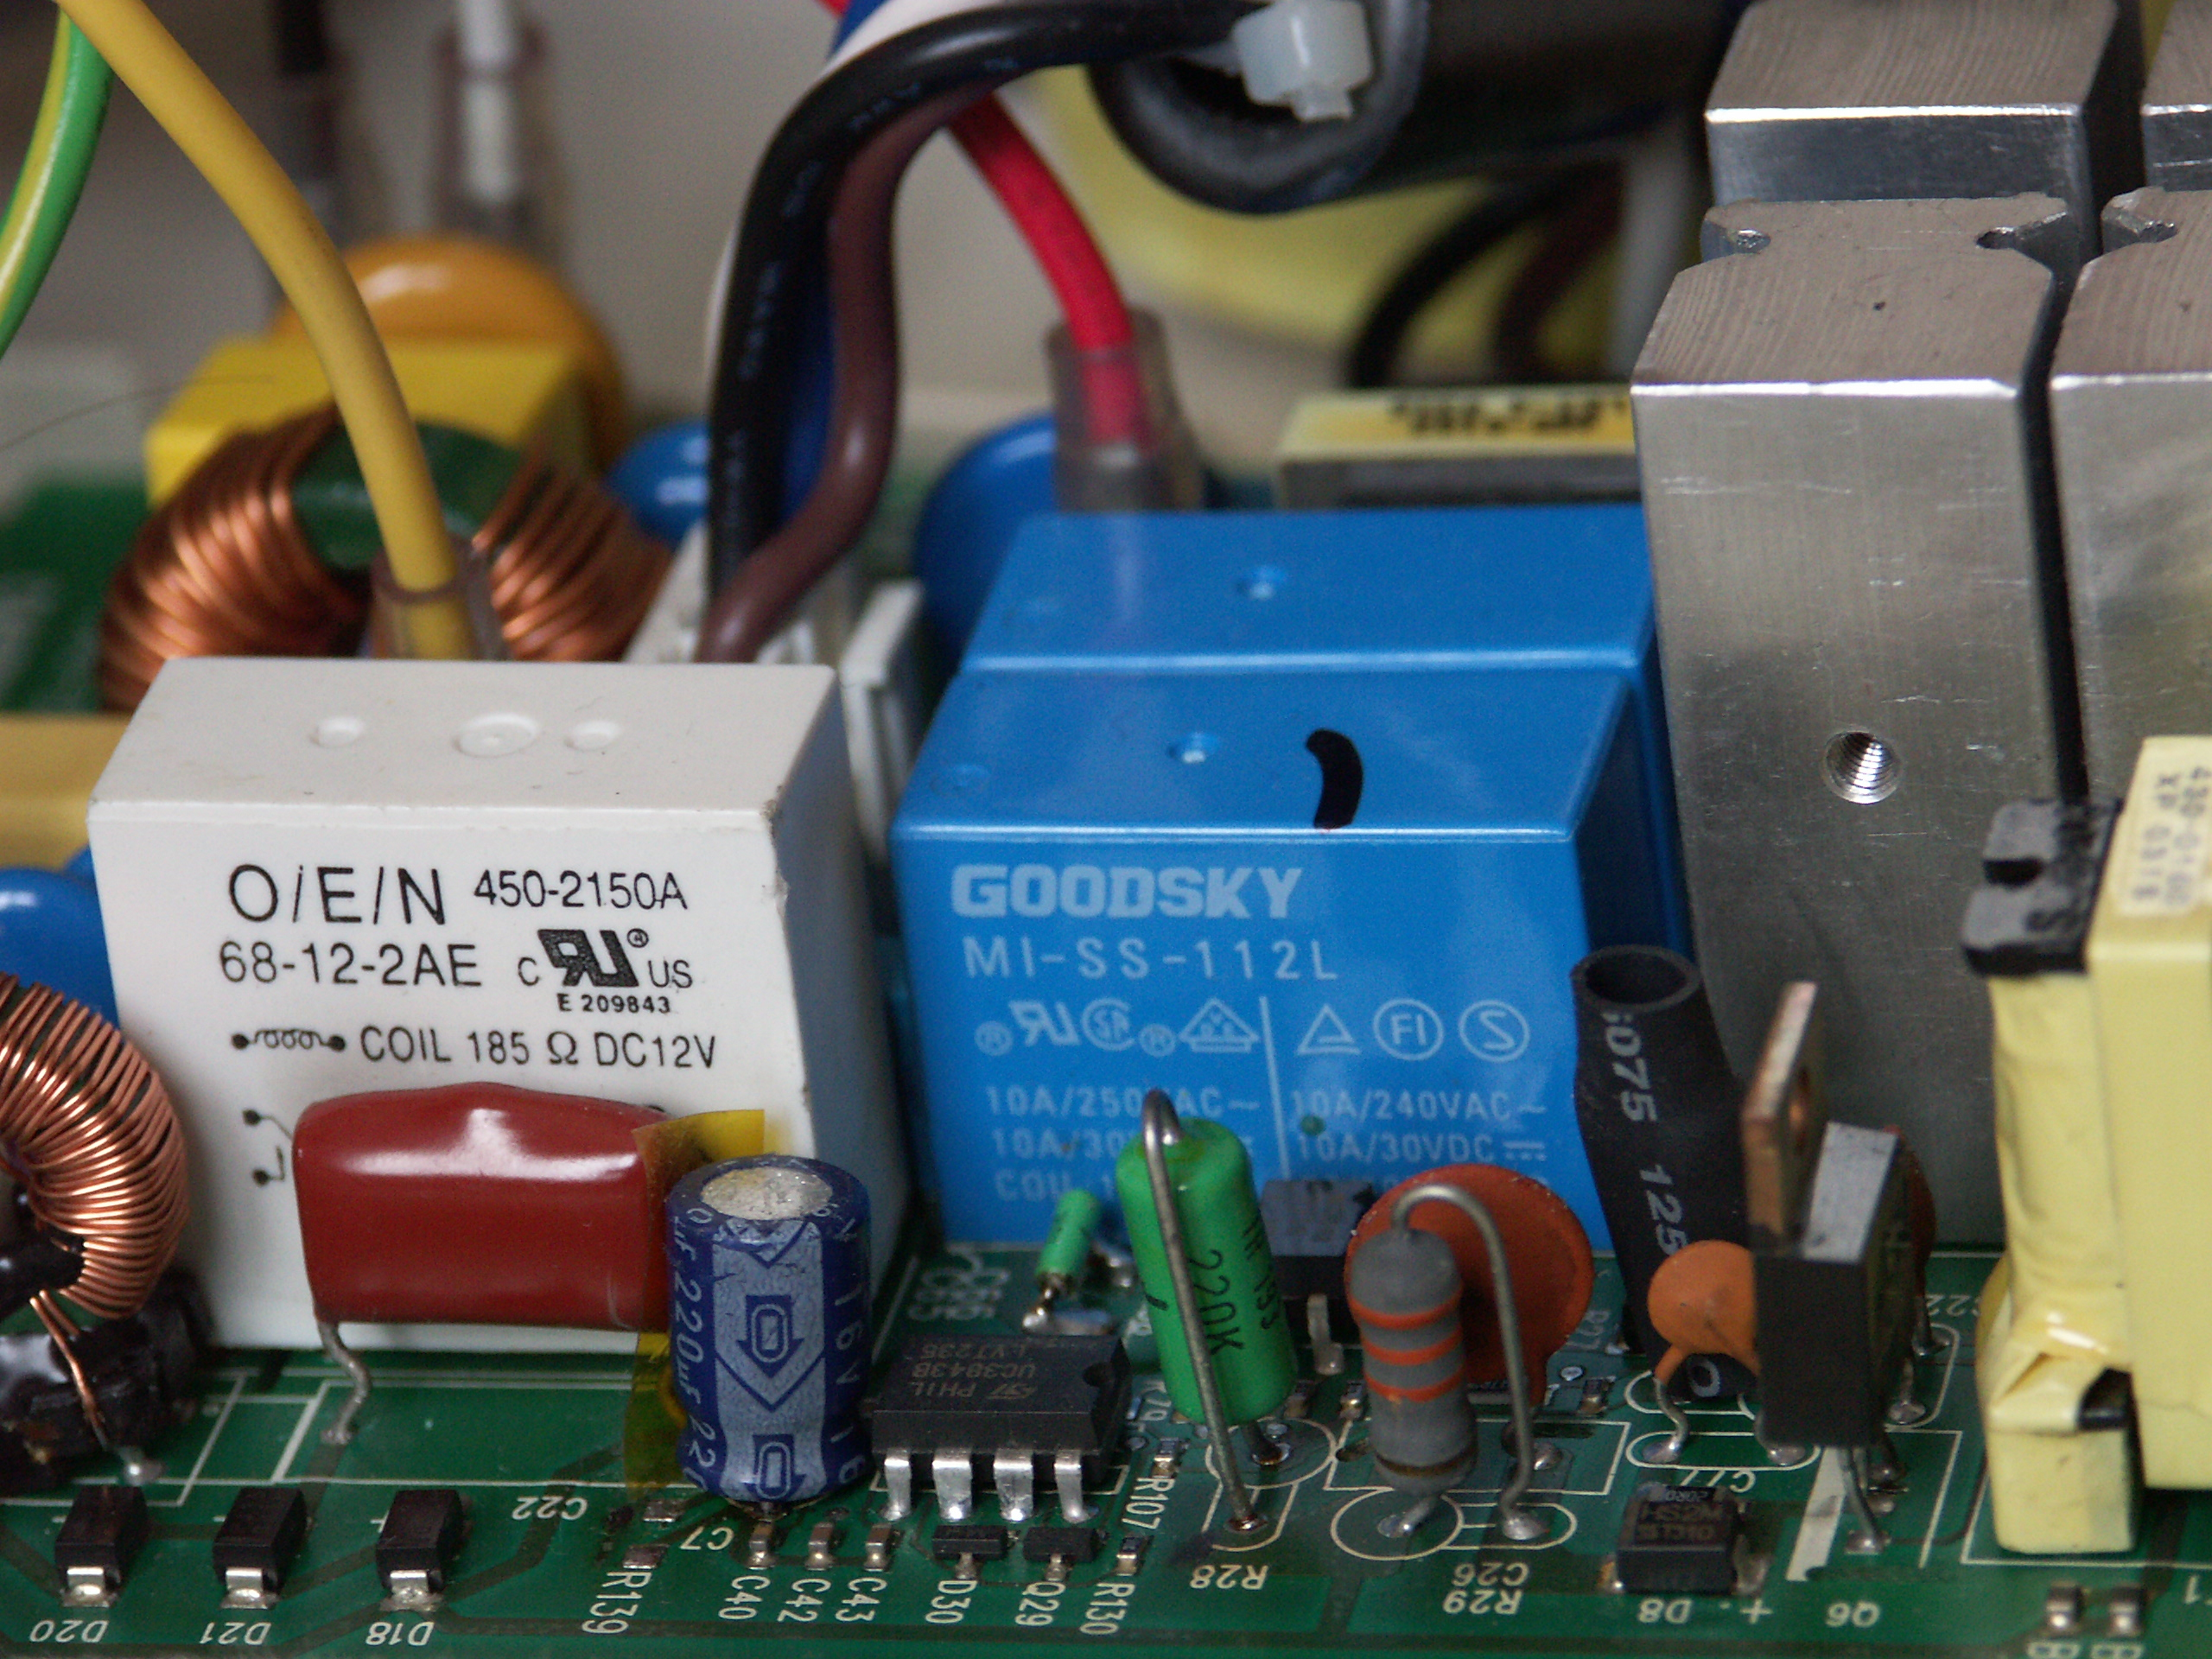 Repair And Improve Broken Apc Ups Rs 500 Backup Battery Switch With Mosfet Top View Of The Oscillator